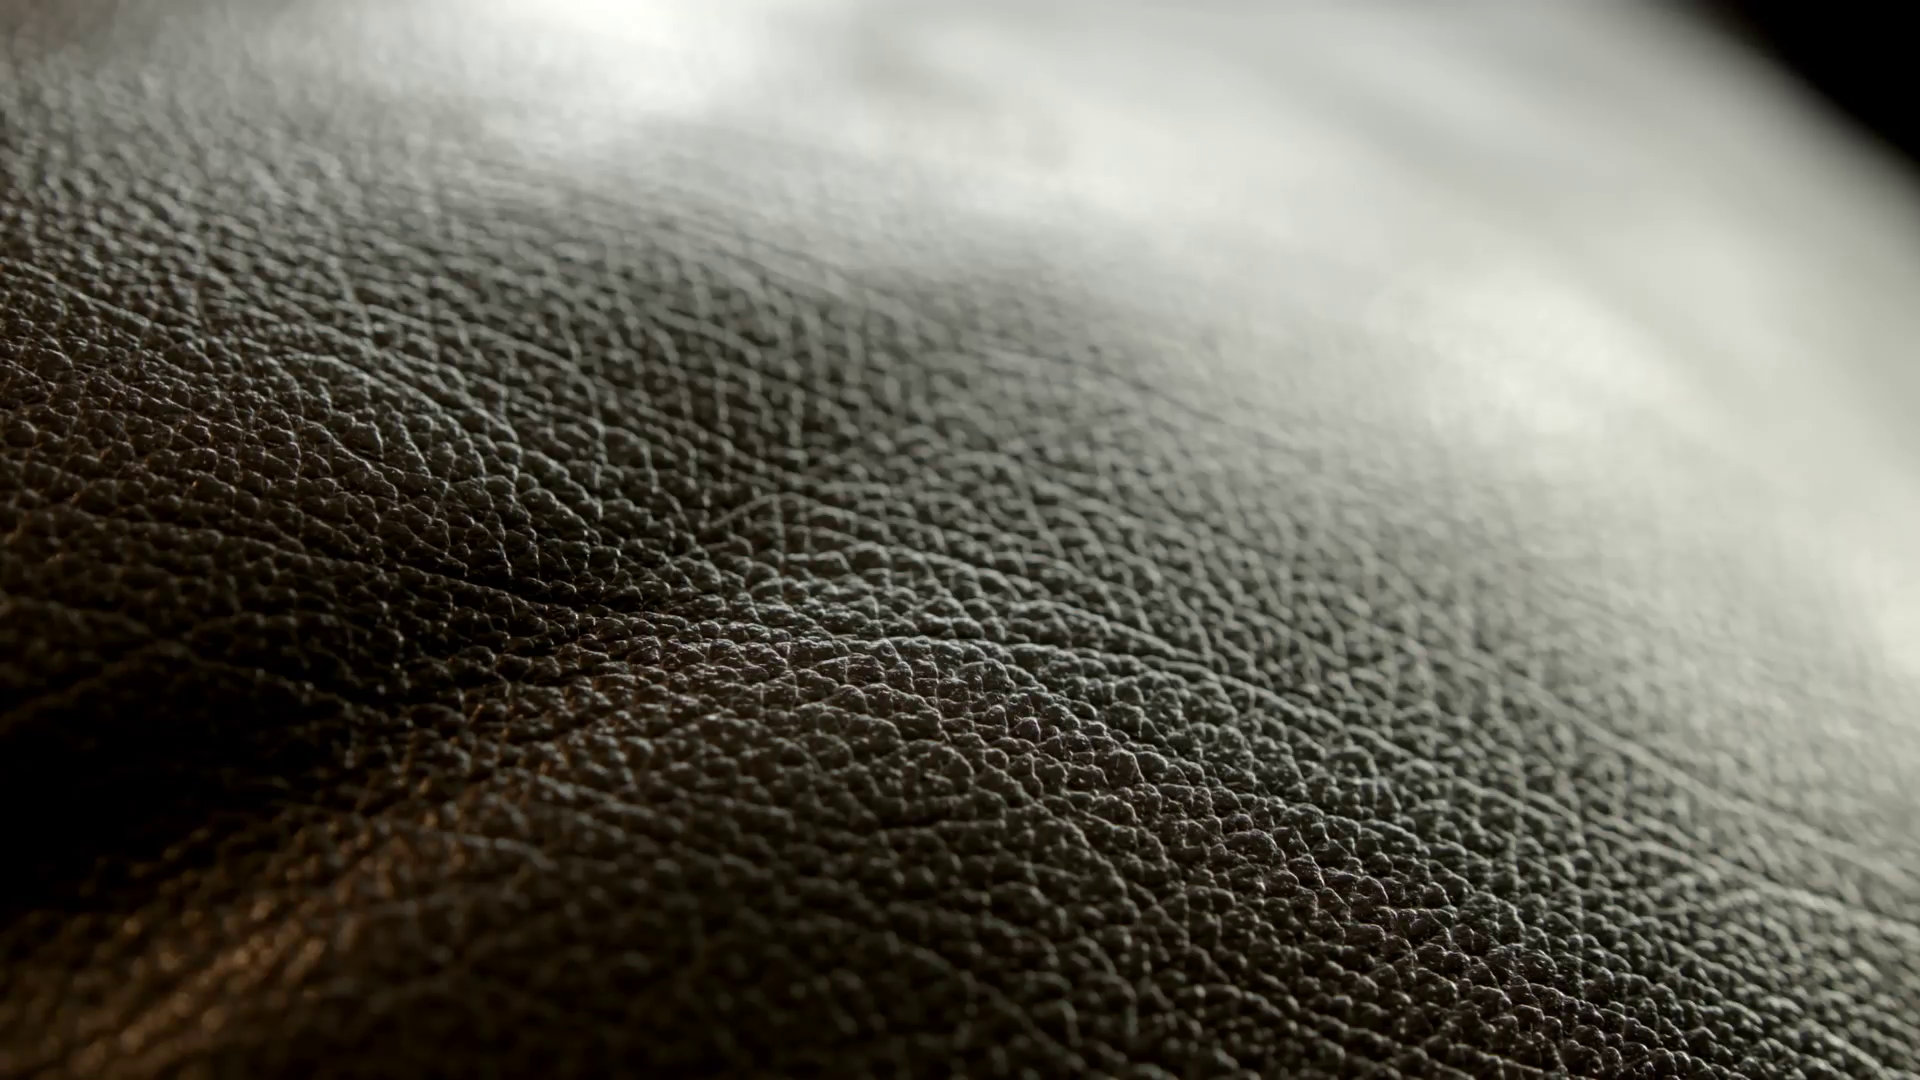 Leather Hide Texture